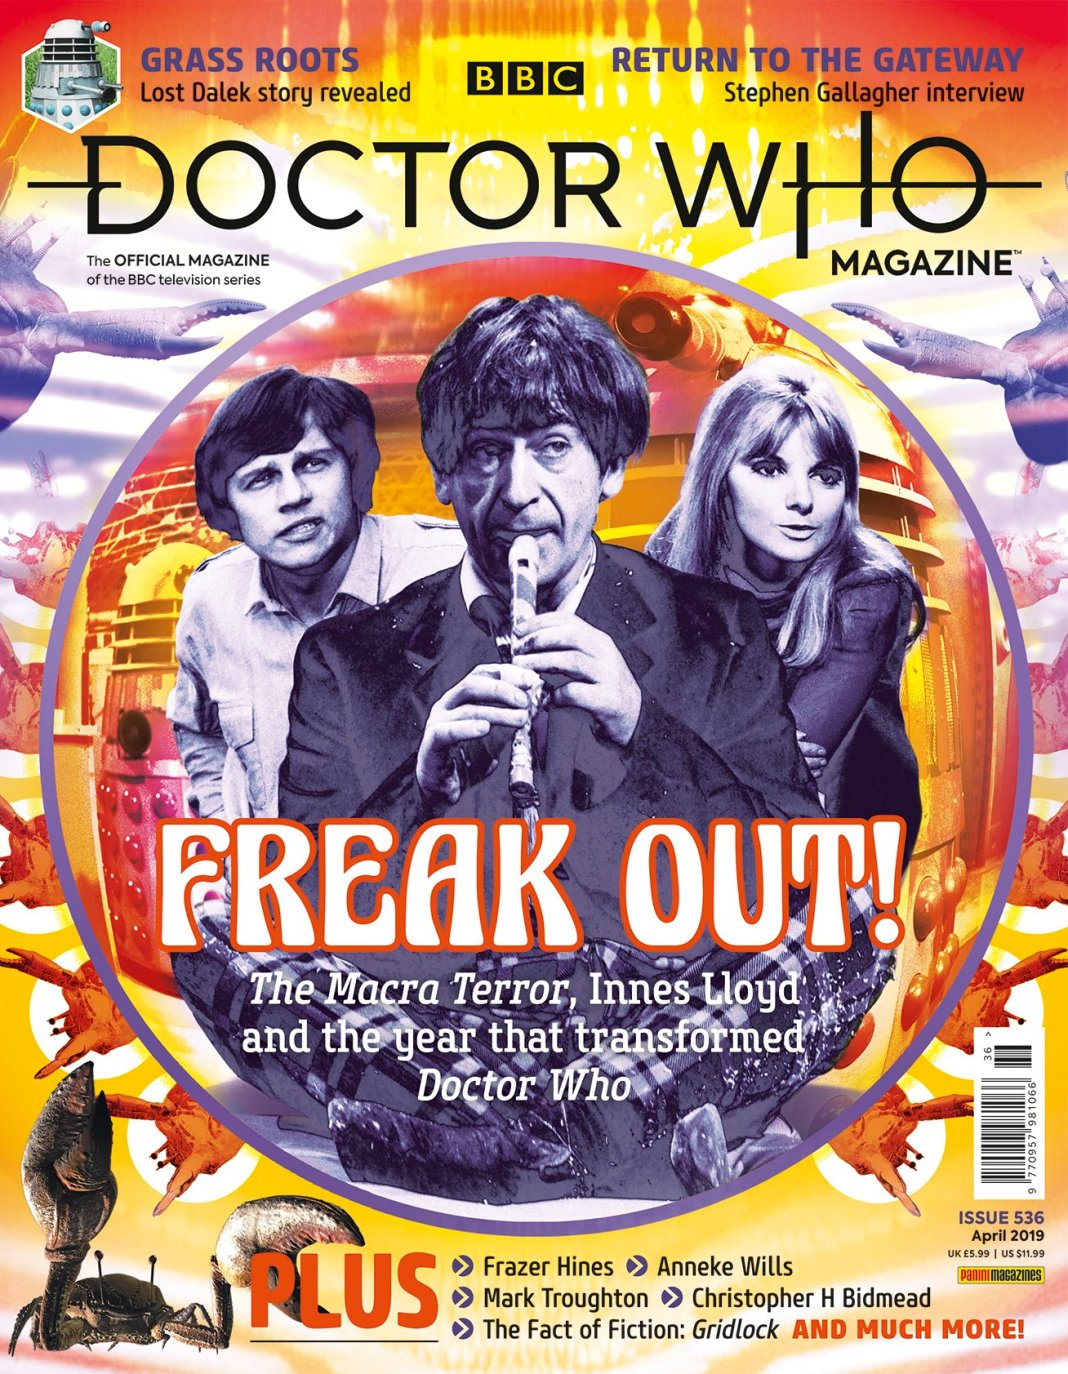 The cover to Doctor Who Magazine Issue 536 (c) Panini